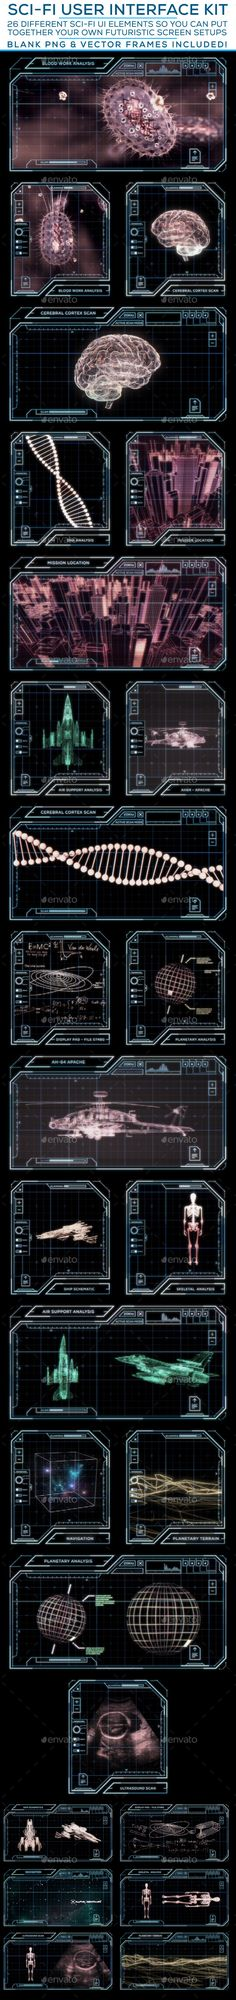 Sci-Fi User Interface Kit Template PSD #design #ui Download…